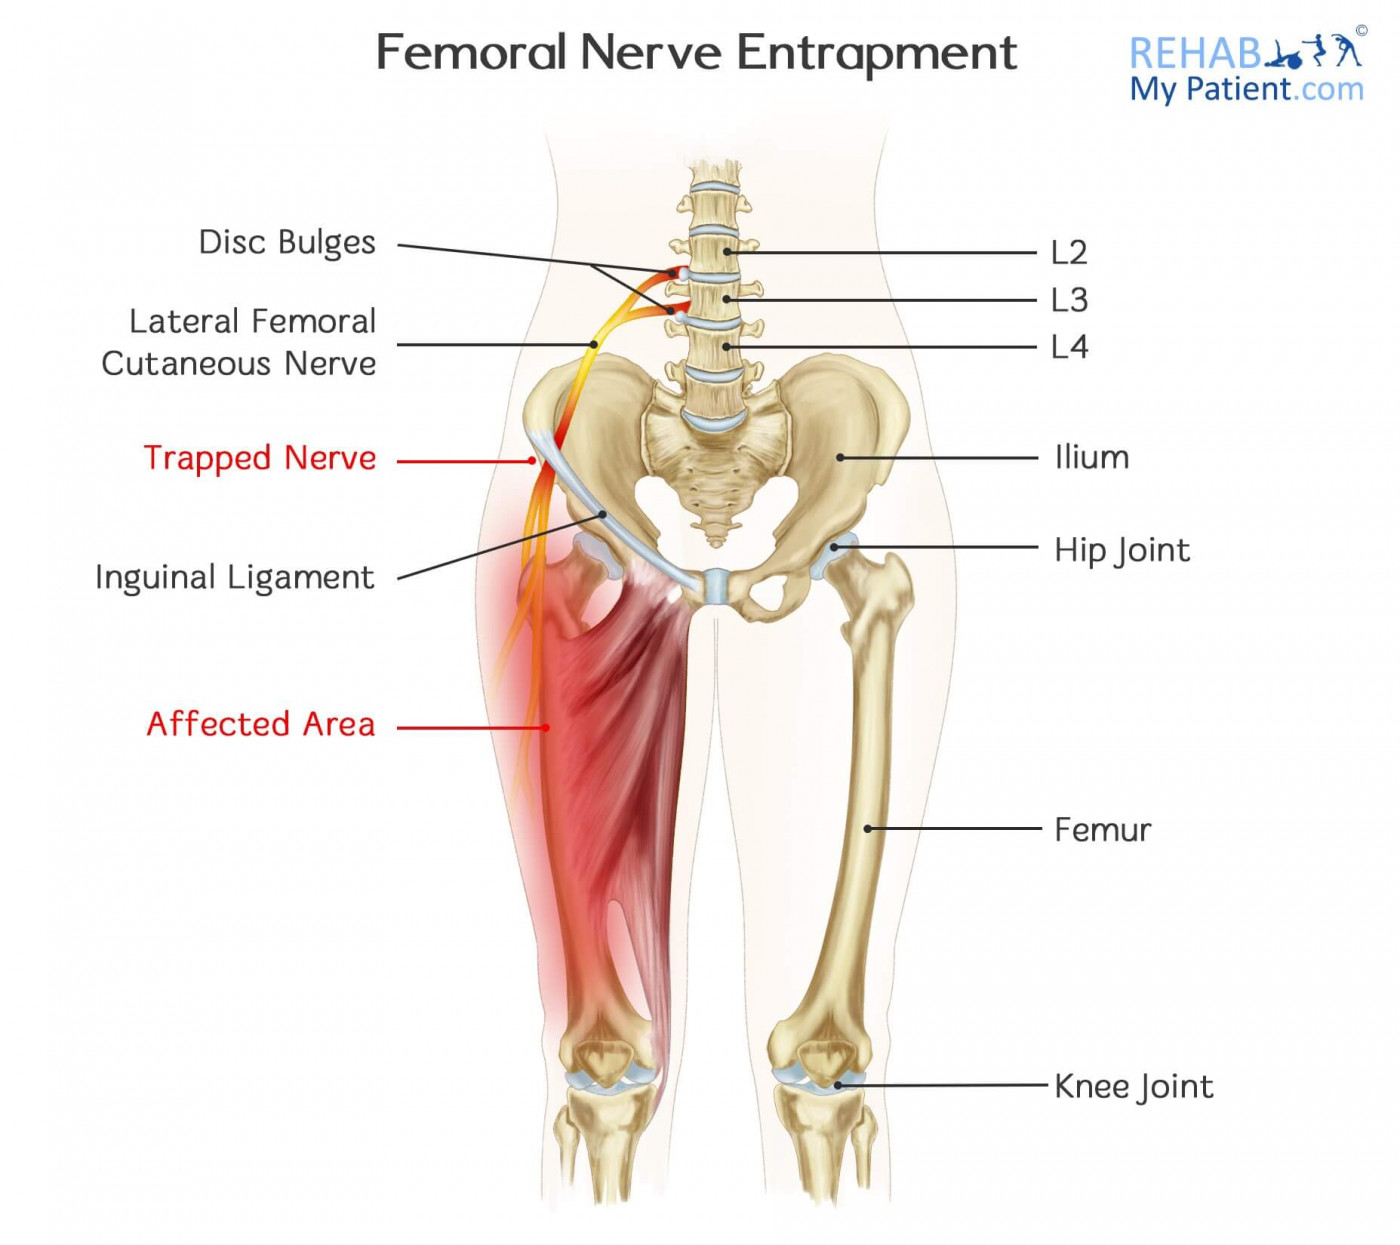 hight resolution of how to treat femoral nerve entrapment